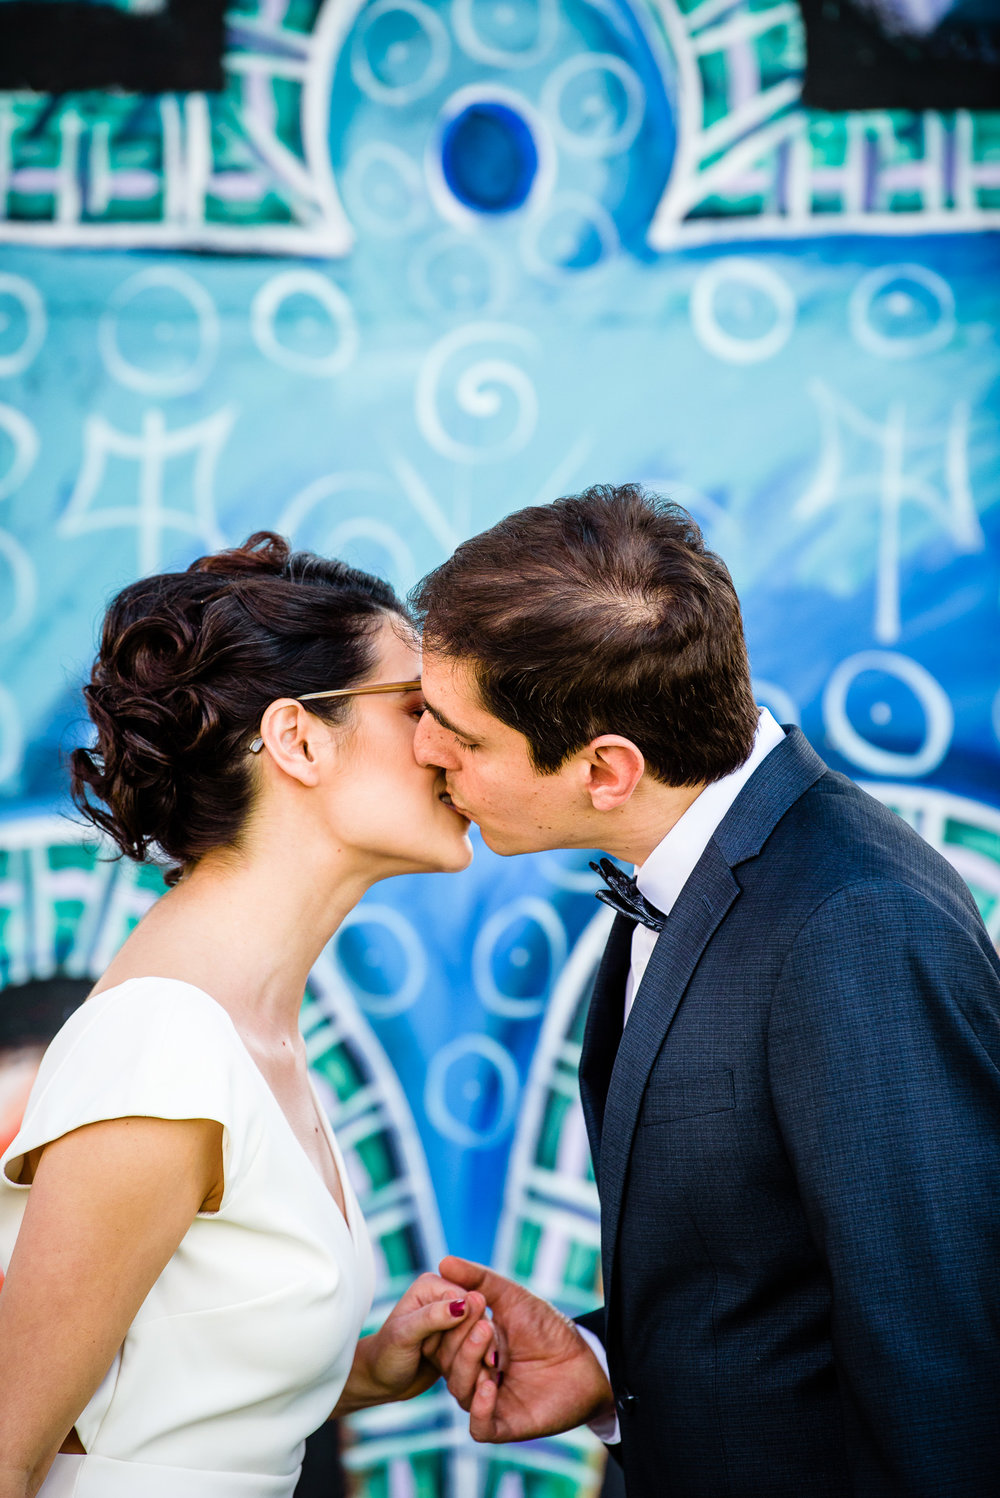 12.29.17 - Michelle and Tommaso Wedding - San Diego Courthouse -  Paul Douda Photography - 030.jpg